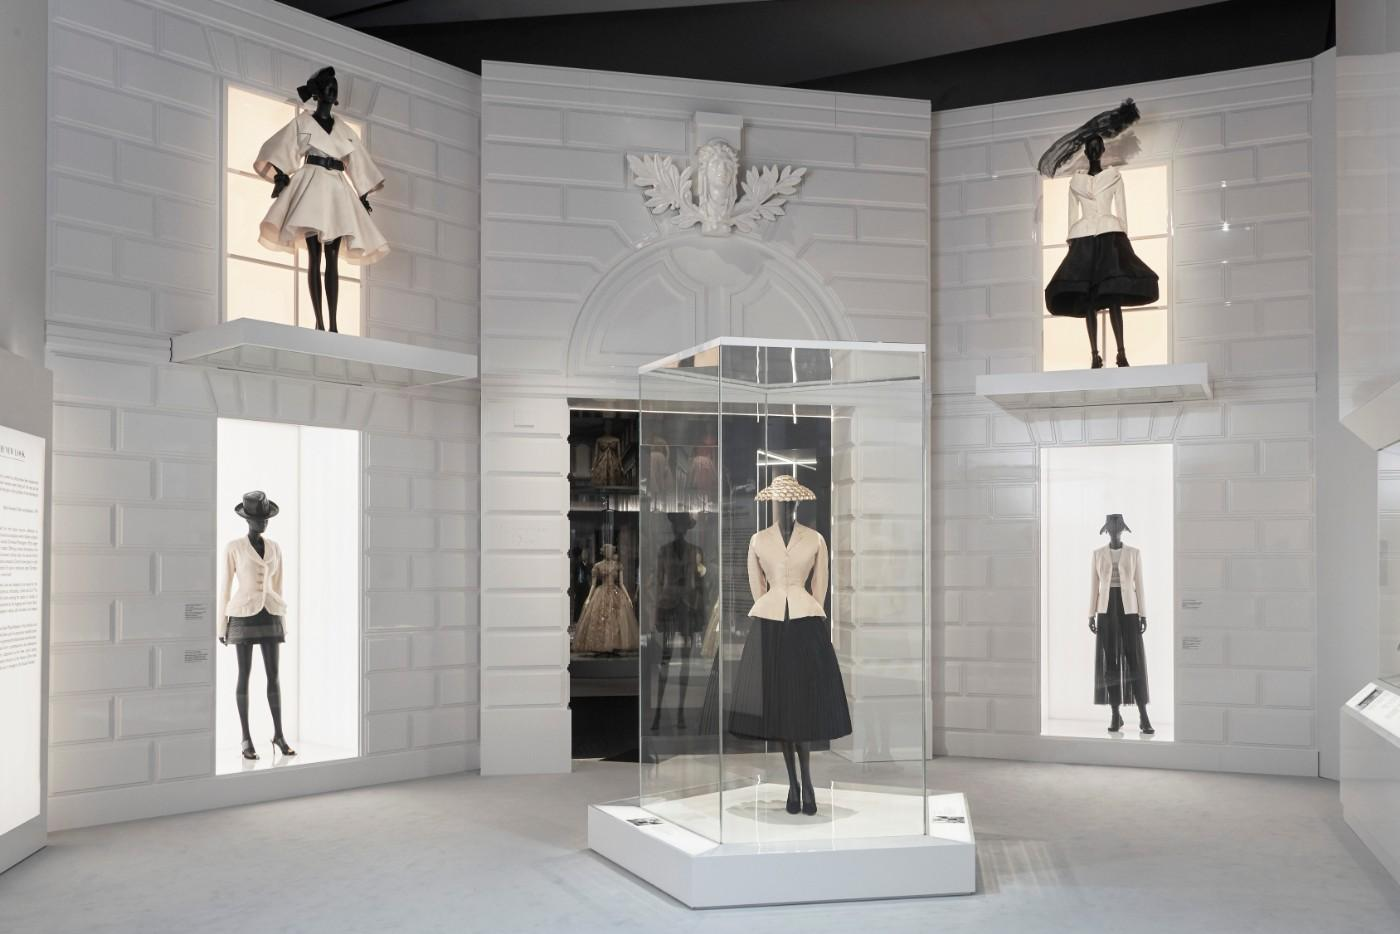 The V&A's Christian Dior Designer of Dreams exhibition, The New Look section